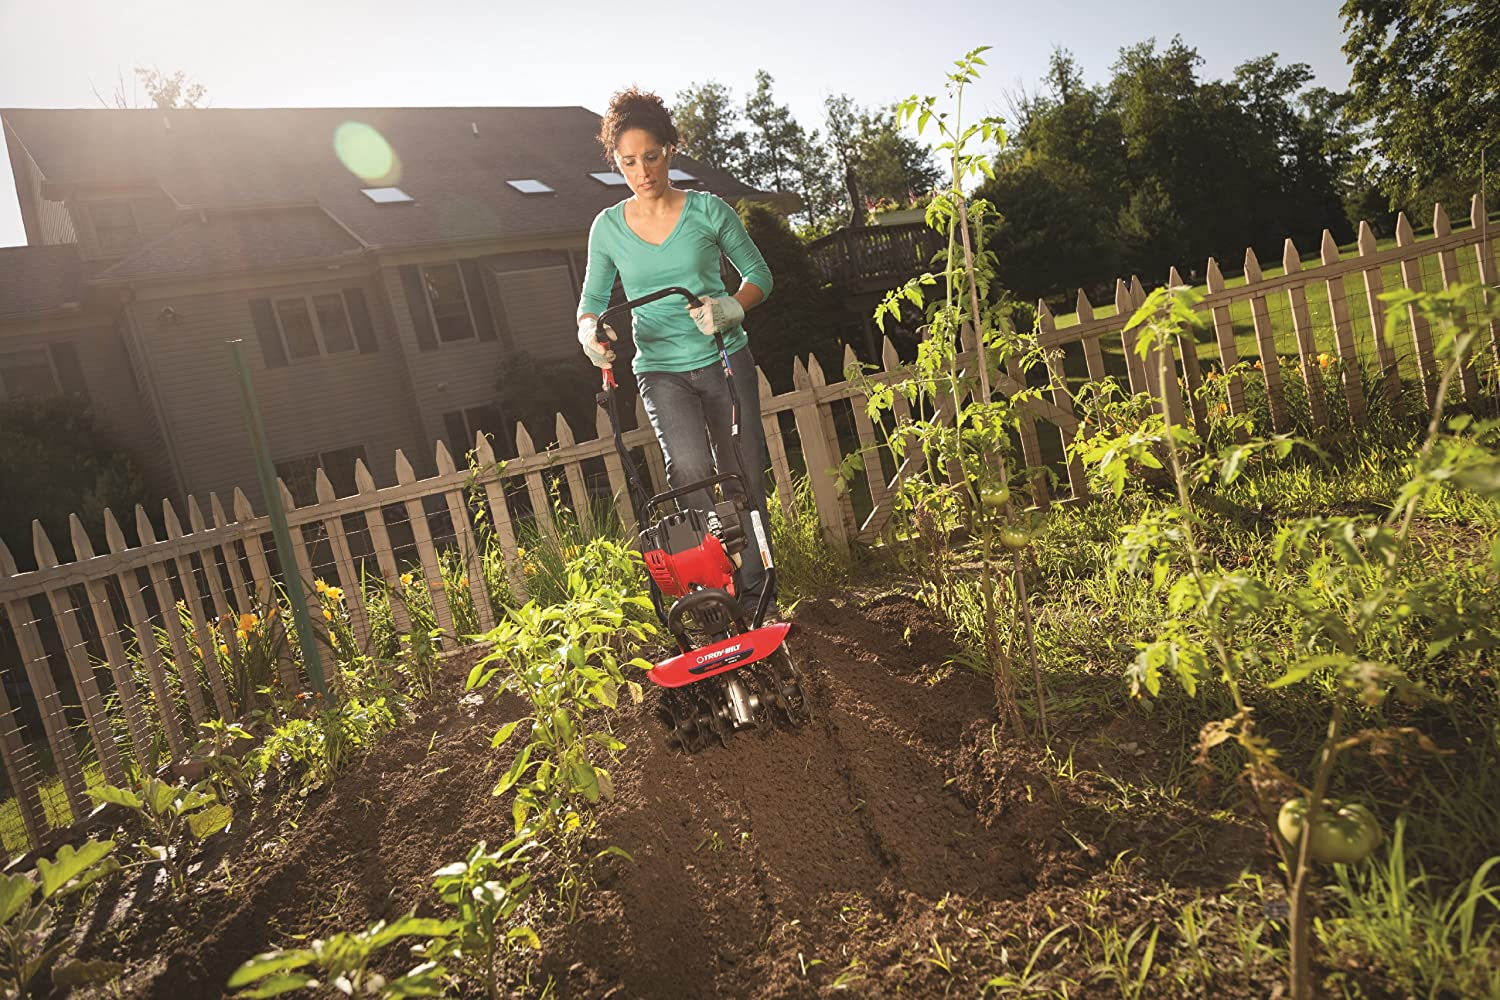 Best Small Tiller For The Small Gardener - Sumo Gardener